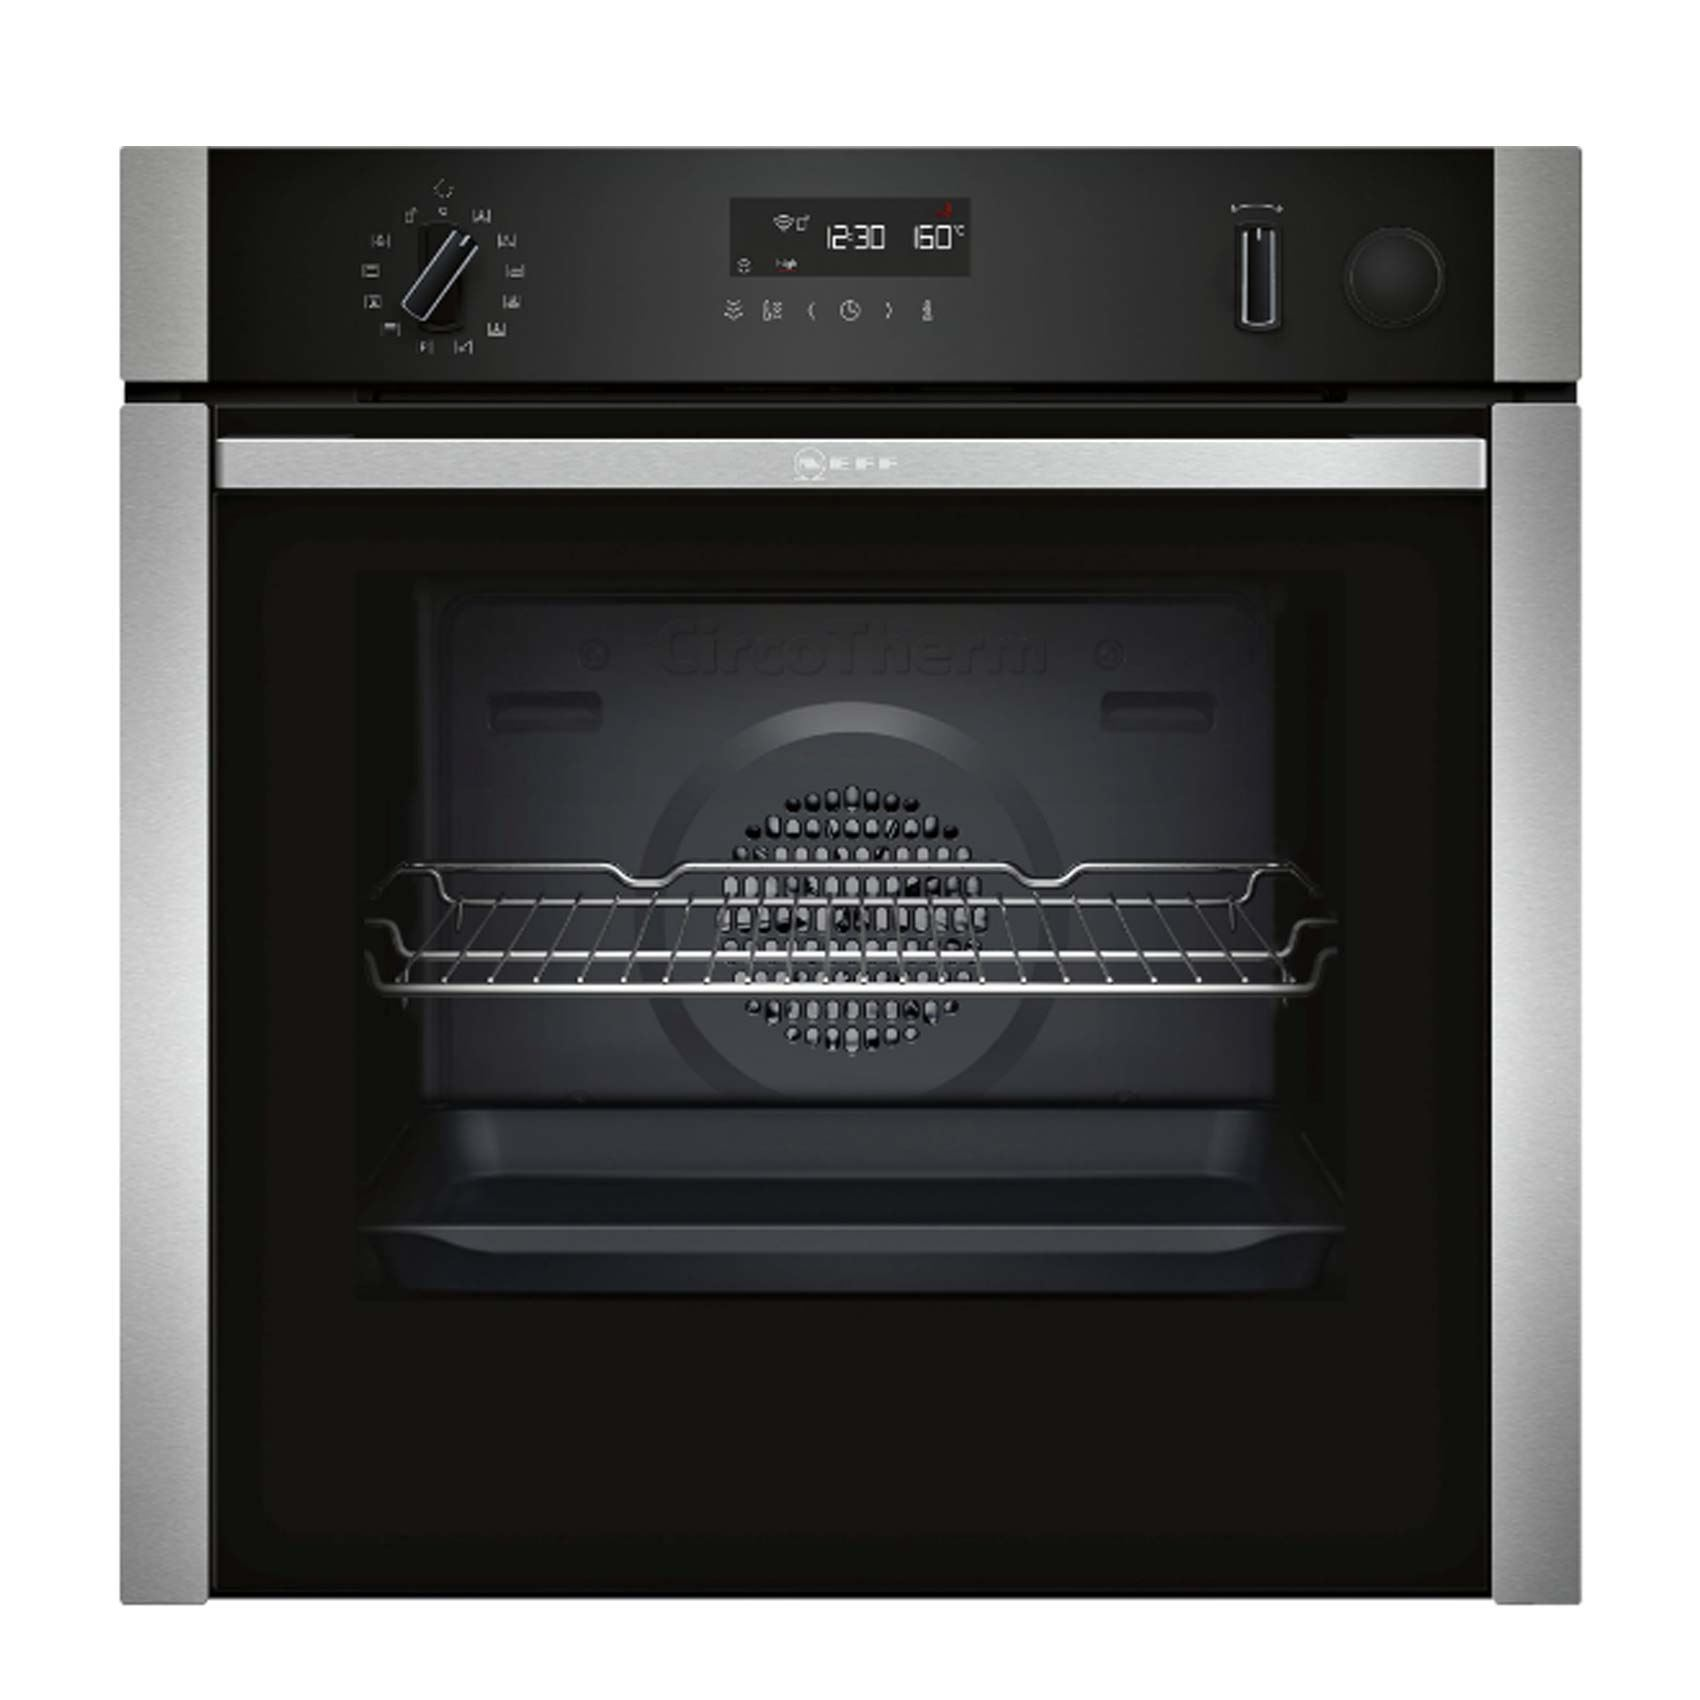 Picture of B5AVM7HH0B Built-in Single Oven With Steam Function